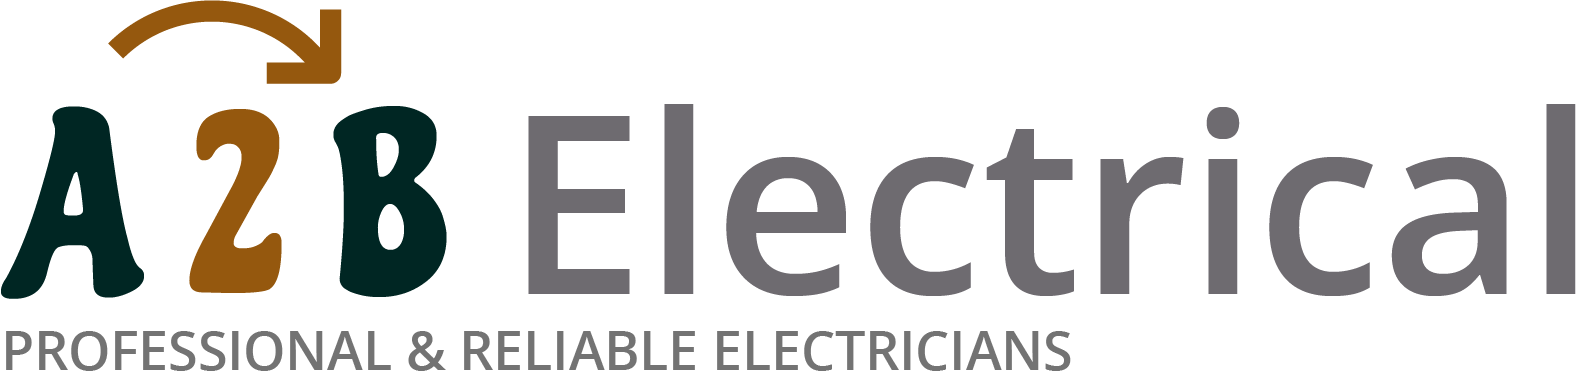 If you have electrical wiring problems in Barking, we can provide an electrician to have a look for you.